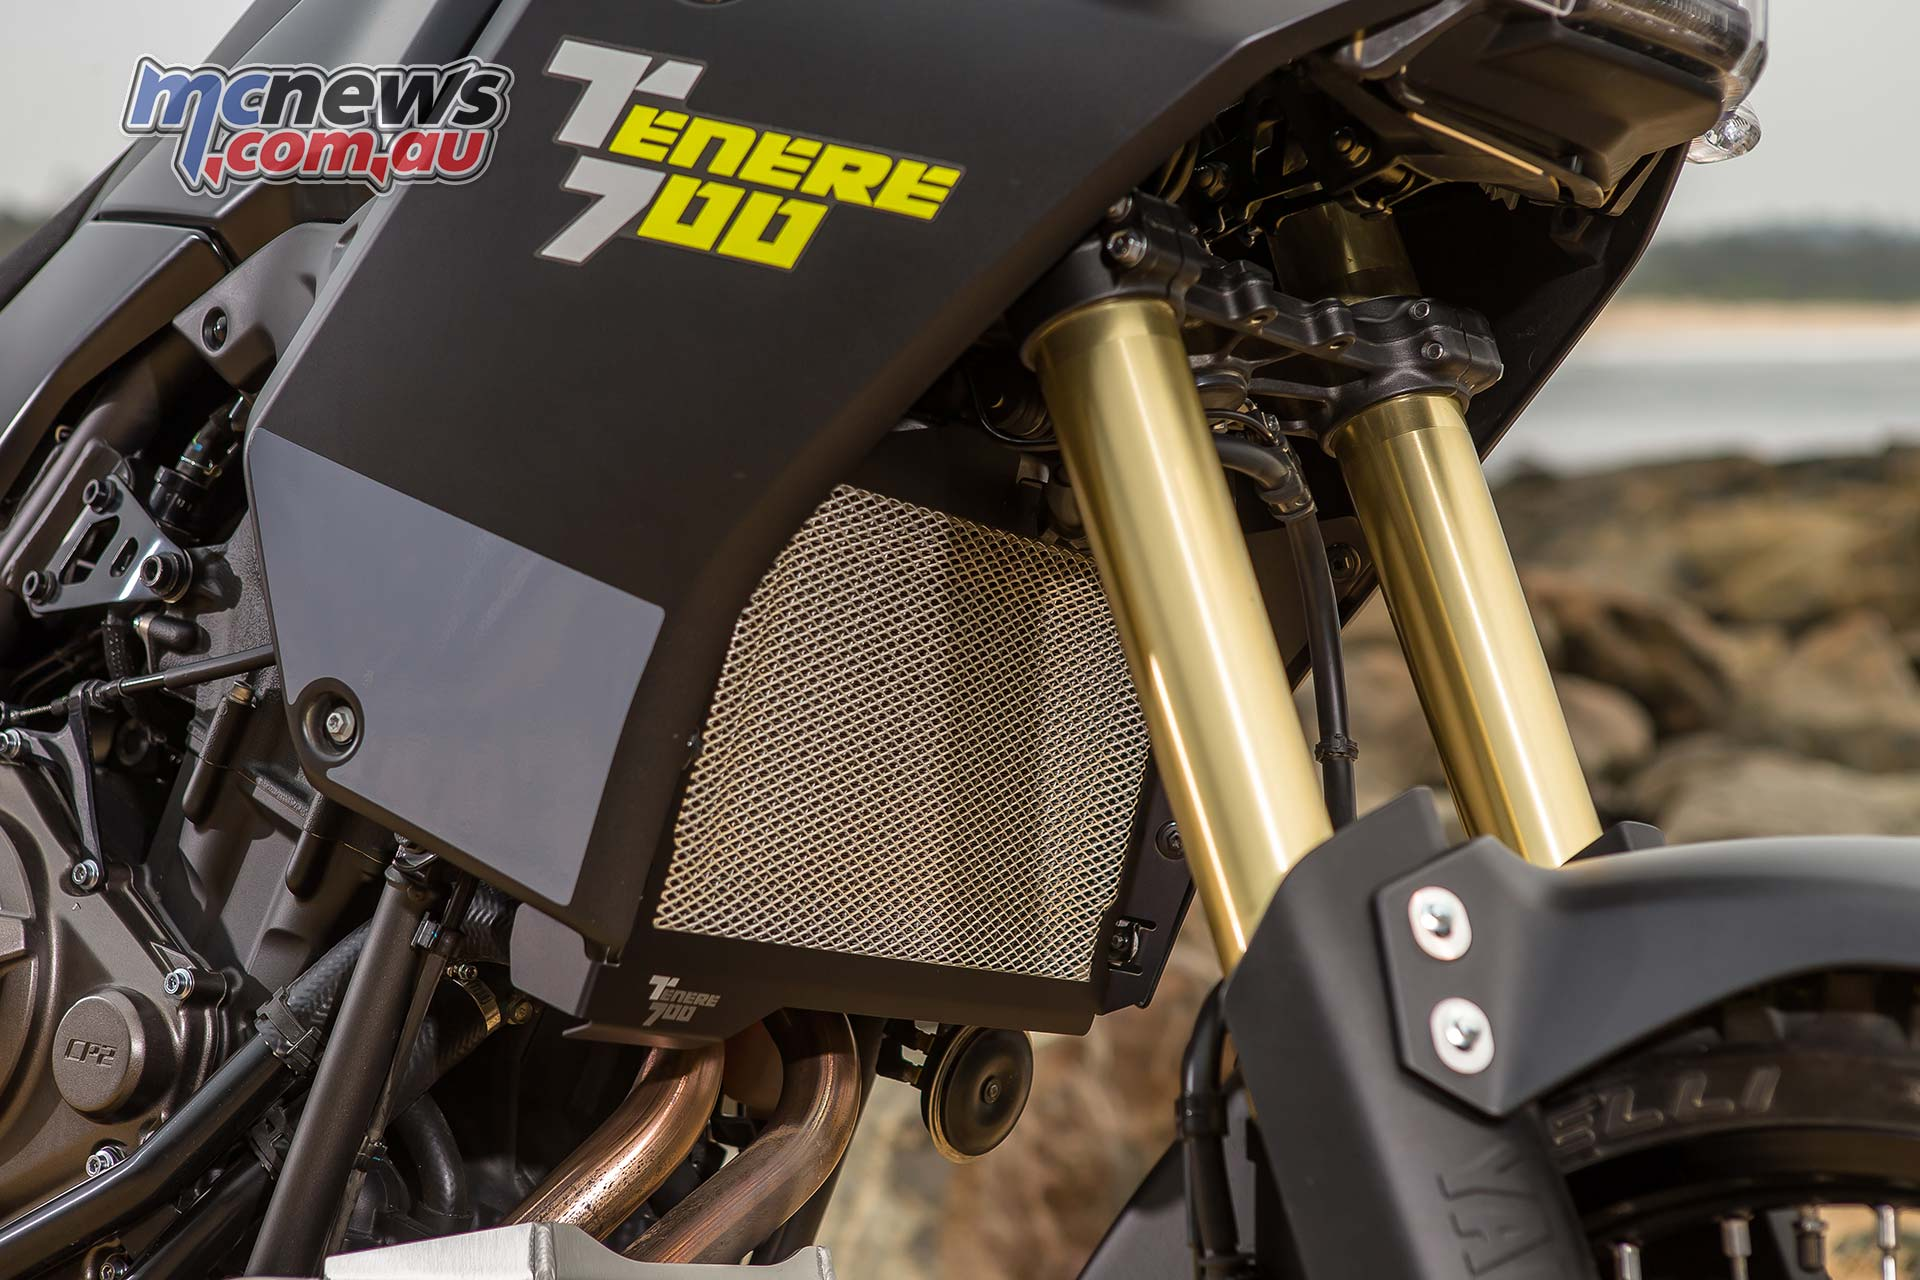 Yamaha Tenere 700 Review Motorcycle Tests Mcnewscomau